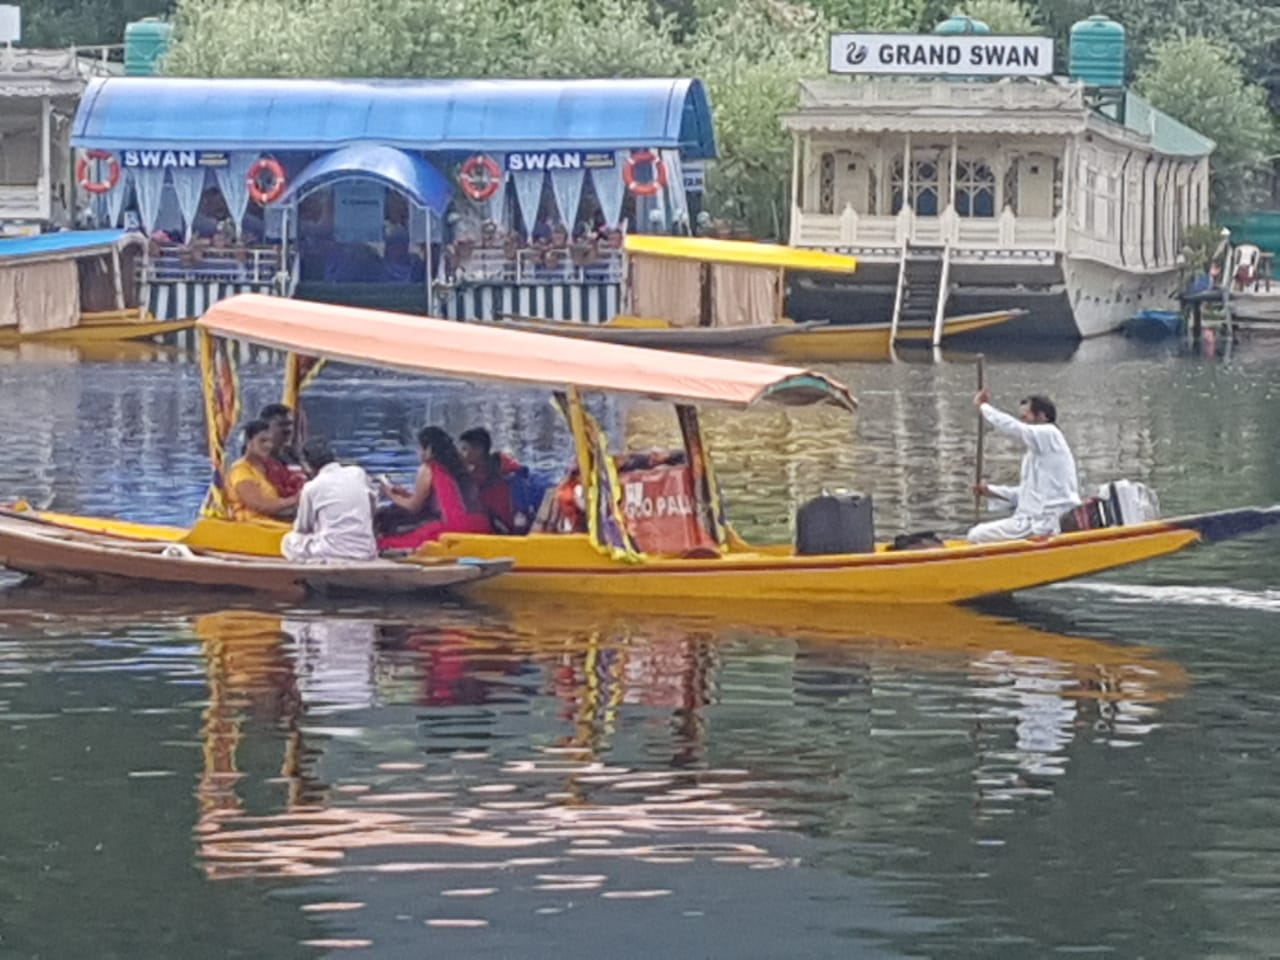 Tourists on Dal Lake, a major attraction in Srinagar, were evicted and sent home on Monday. Photo by Taha Zahoor.